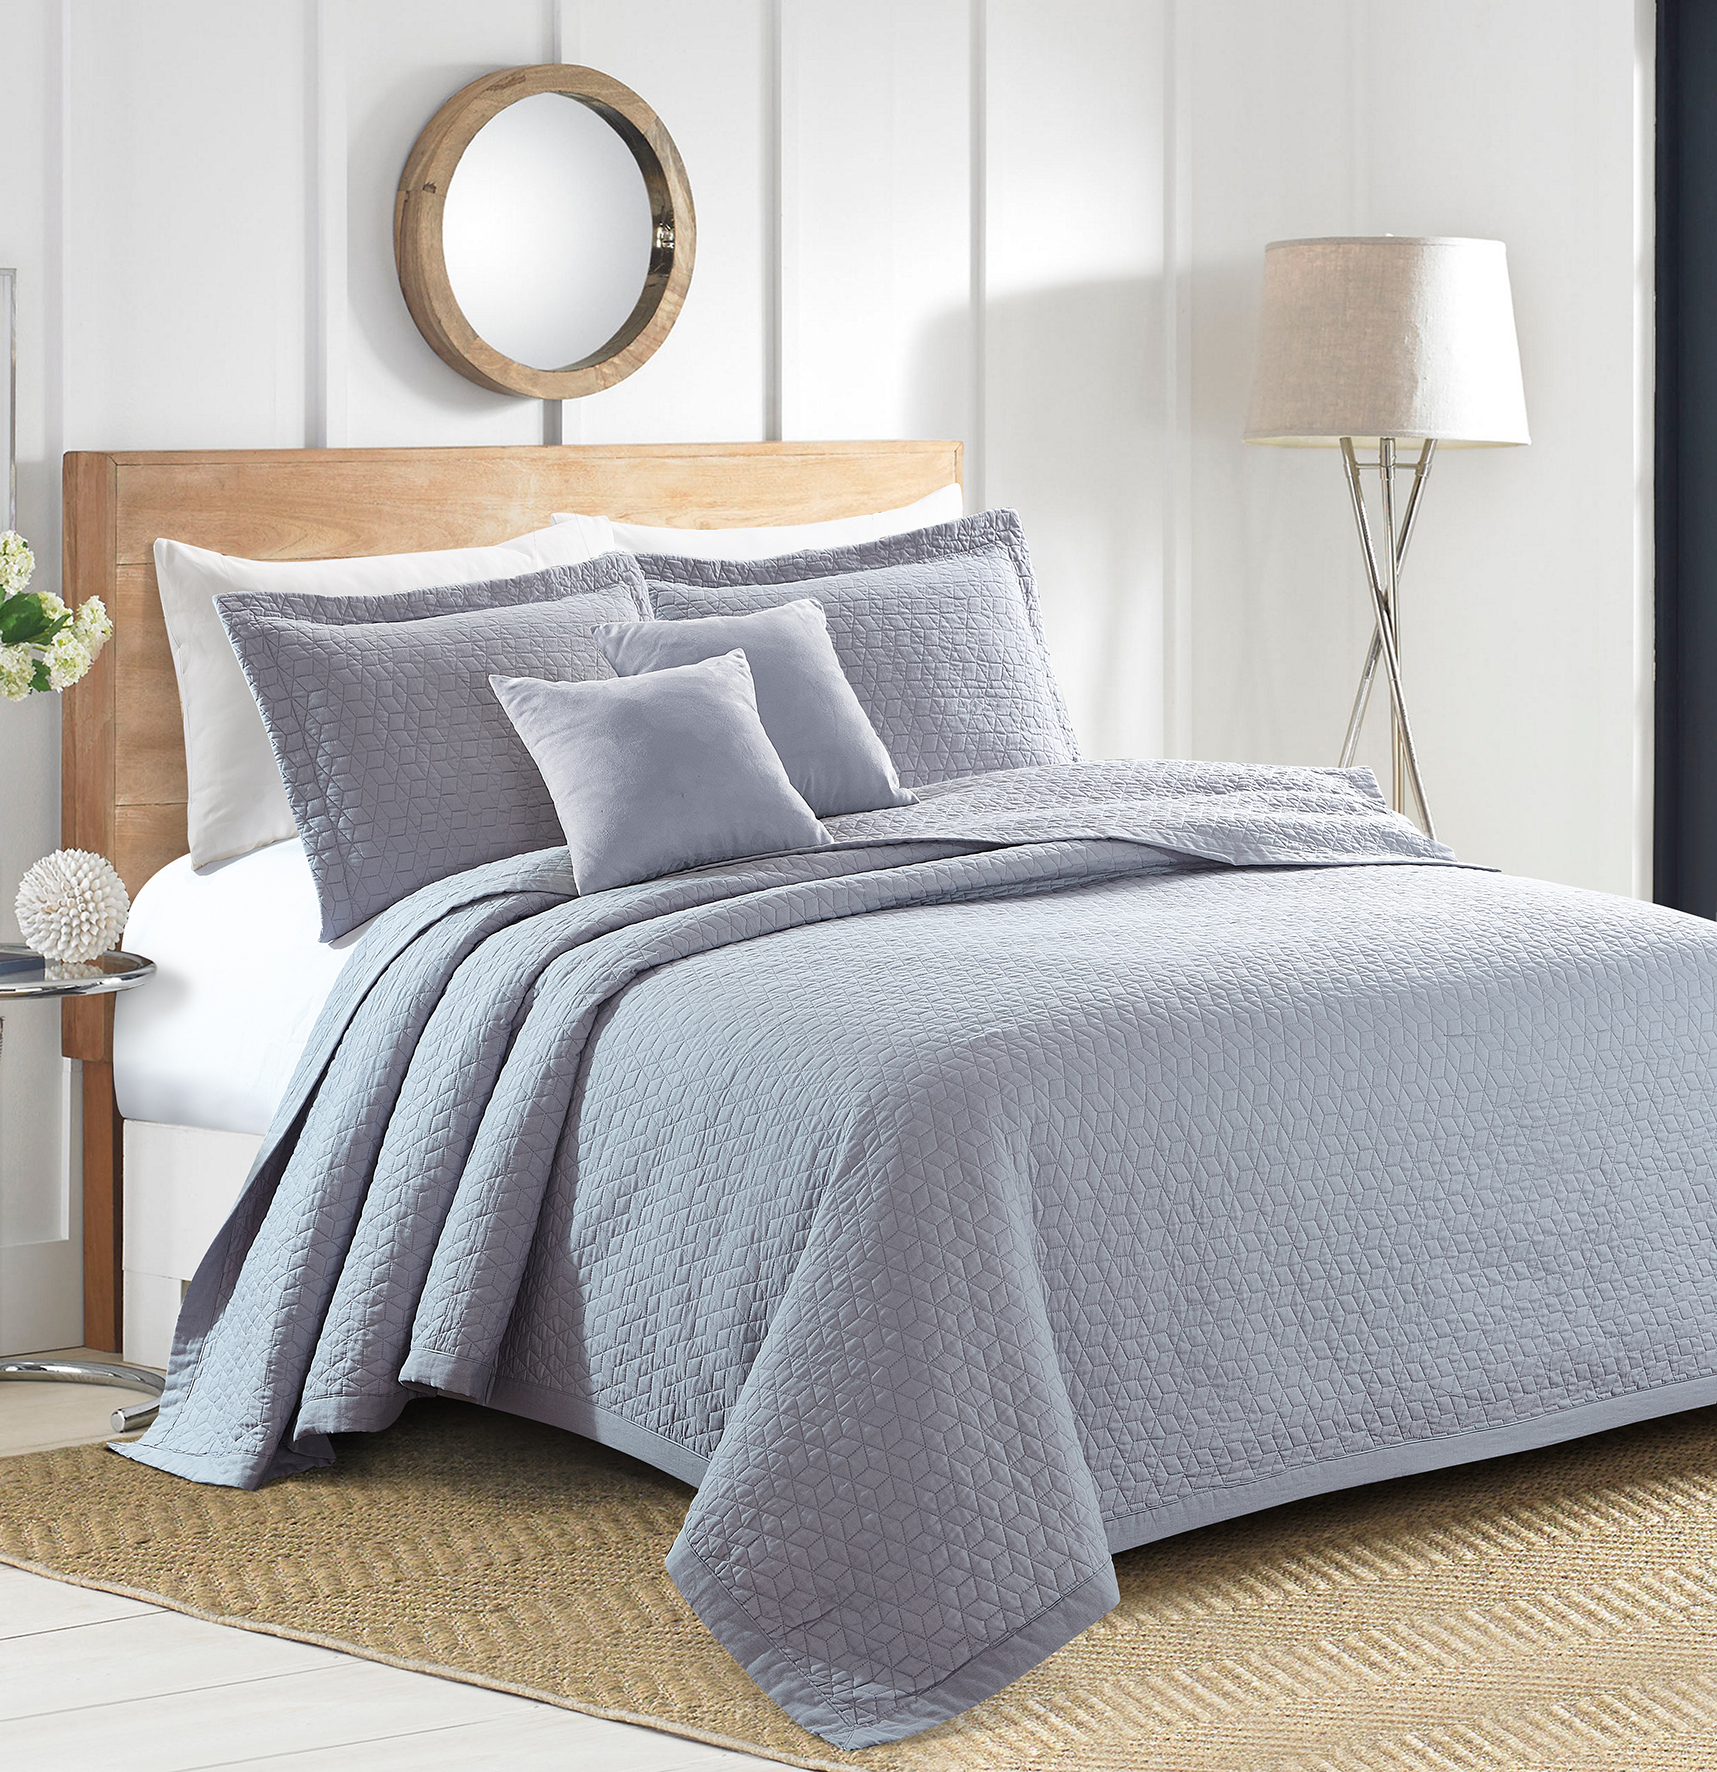 Sherry Kline Out of the Box Embroidered 3-piece King Light grey Cotton Quilt Set